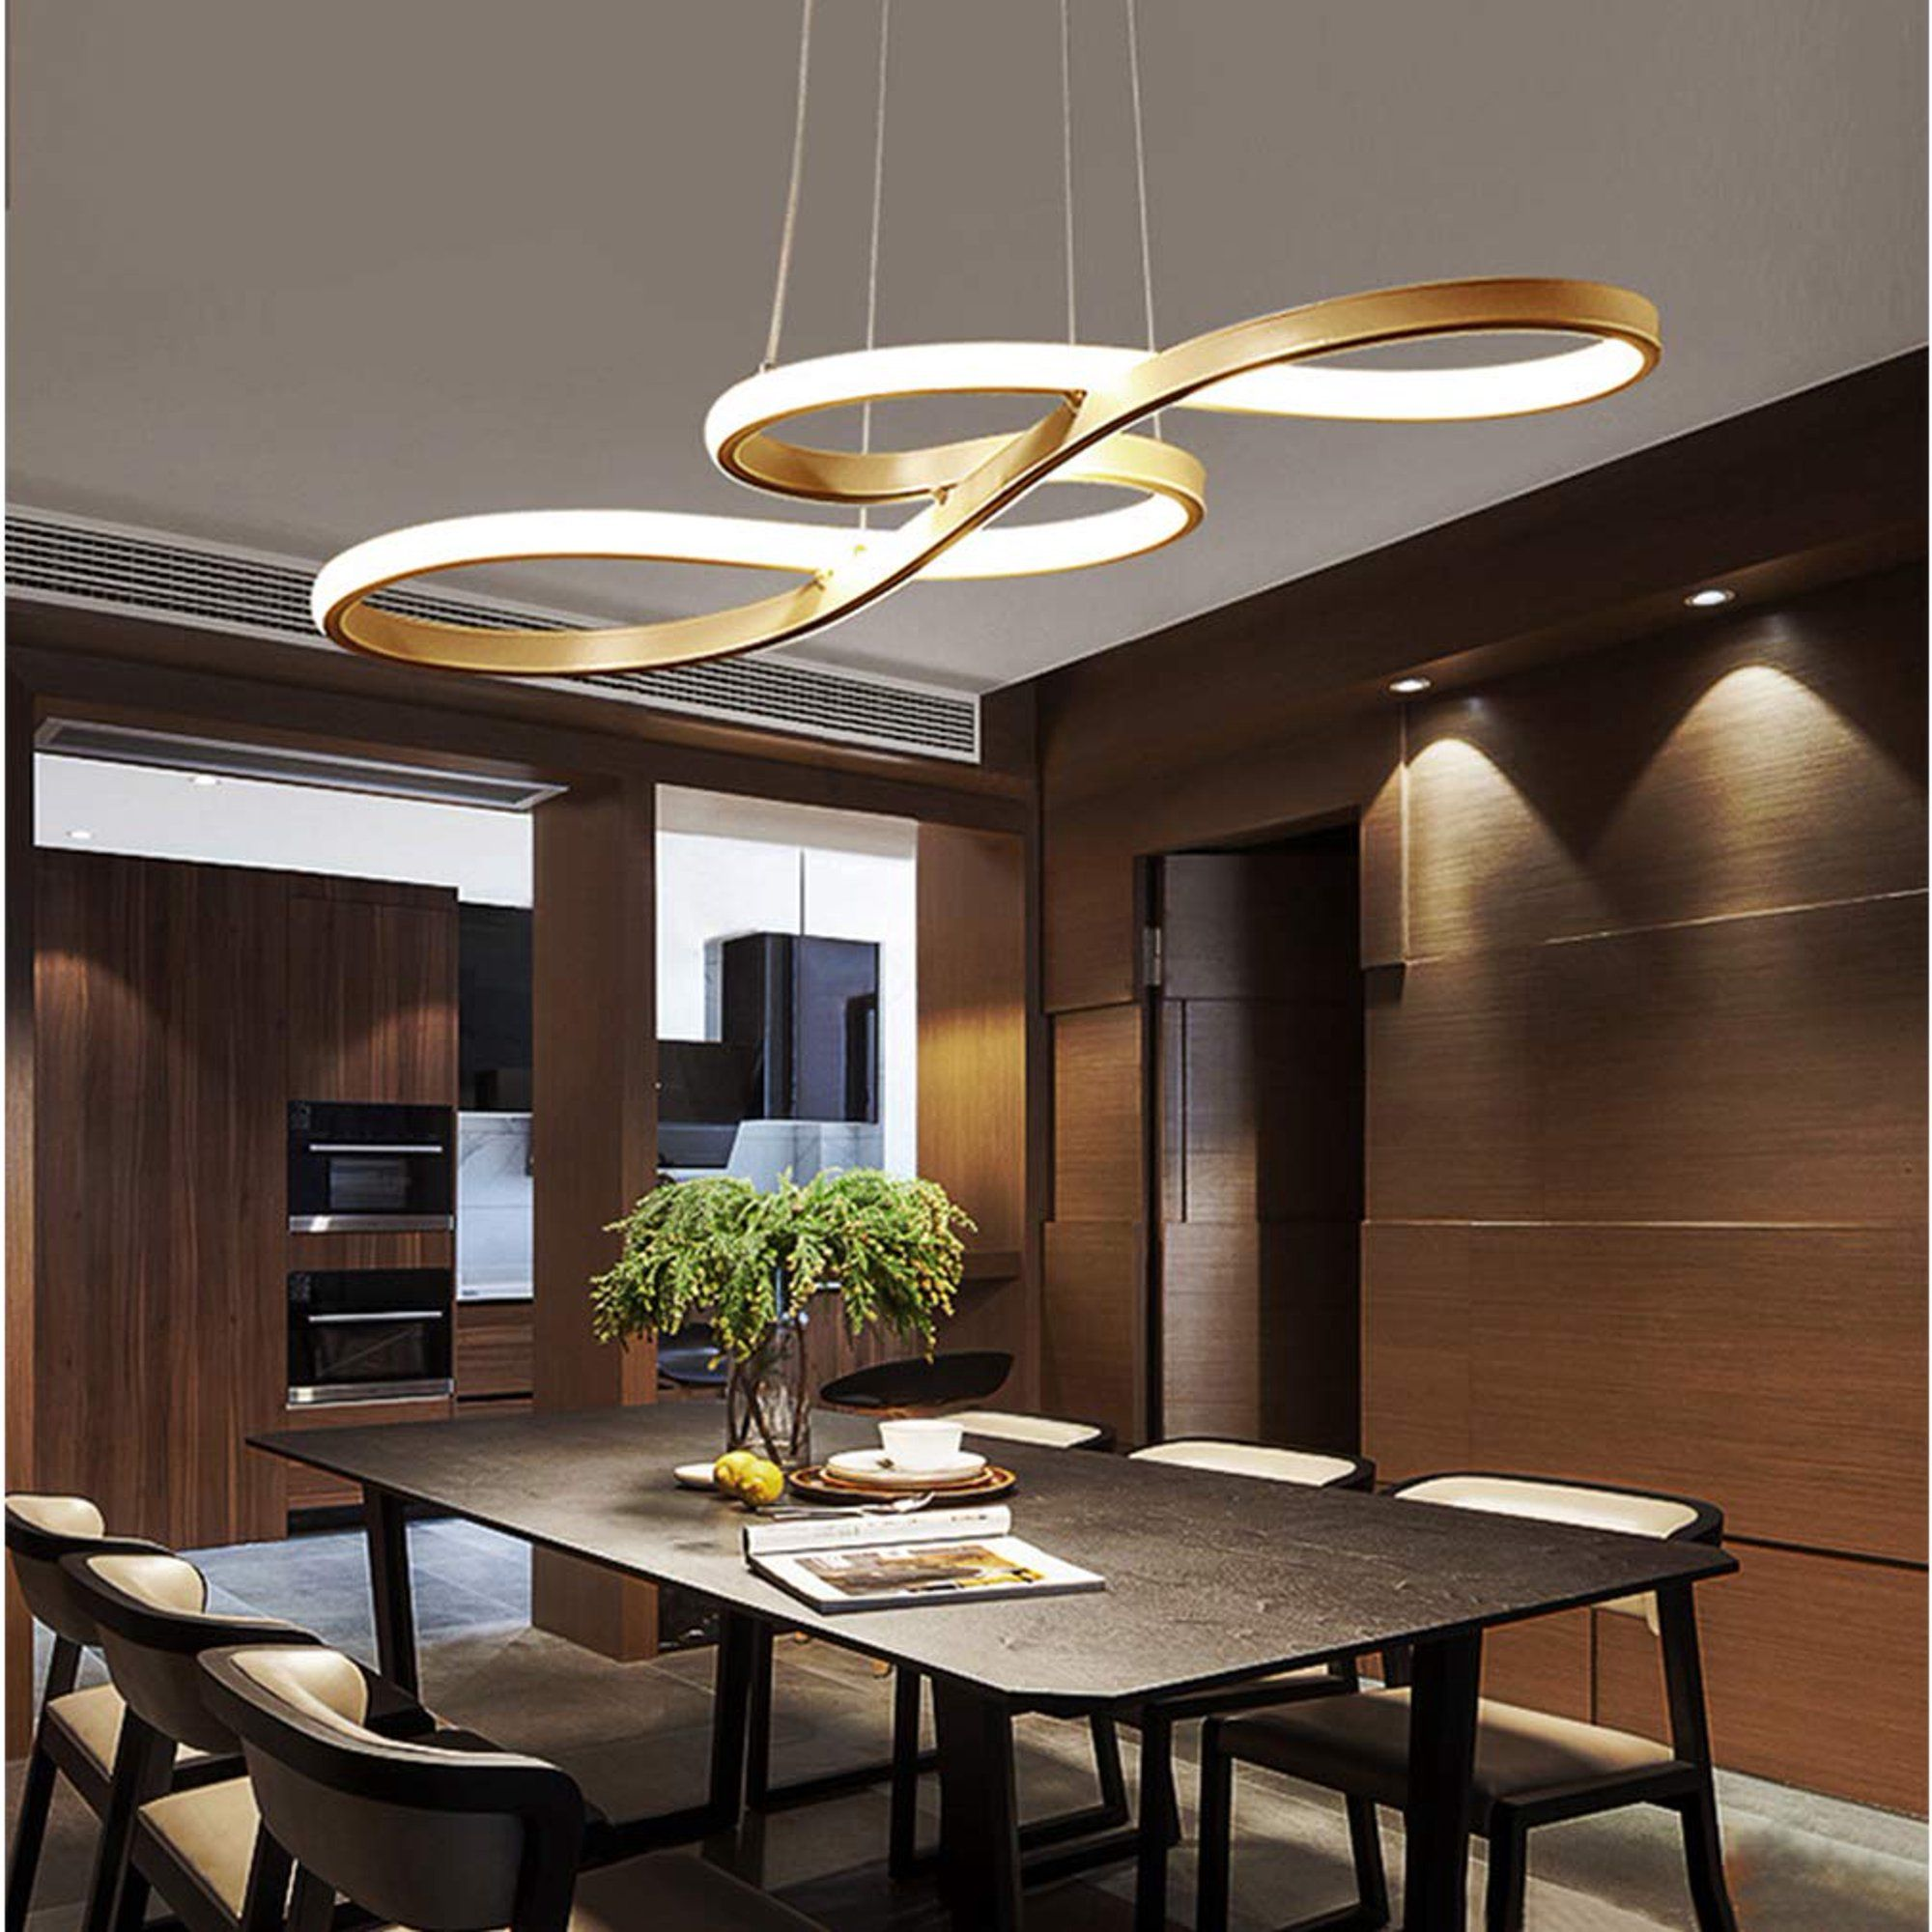 Modern Led Pendant Lighting, Contemporary Dining Room Ceiling Light Fixtures